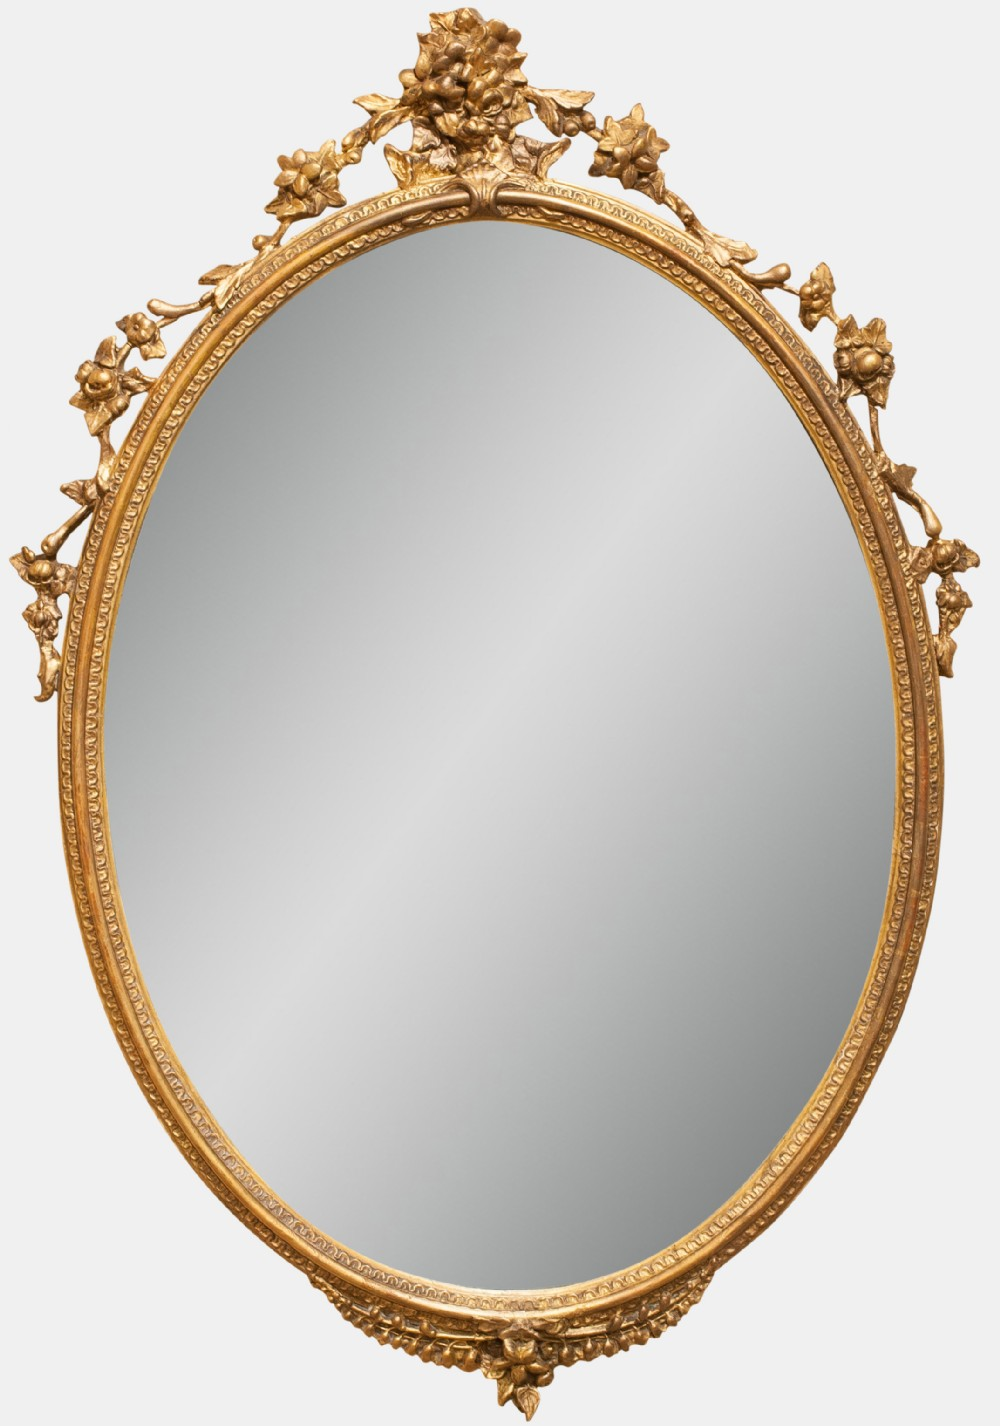 Another Picture Of Antique Oval Mirror